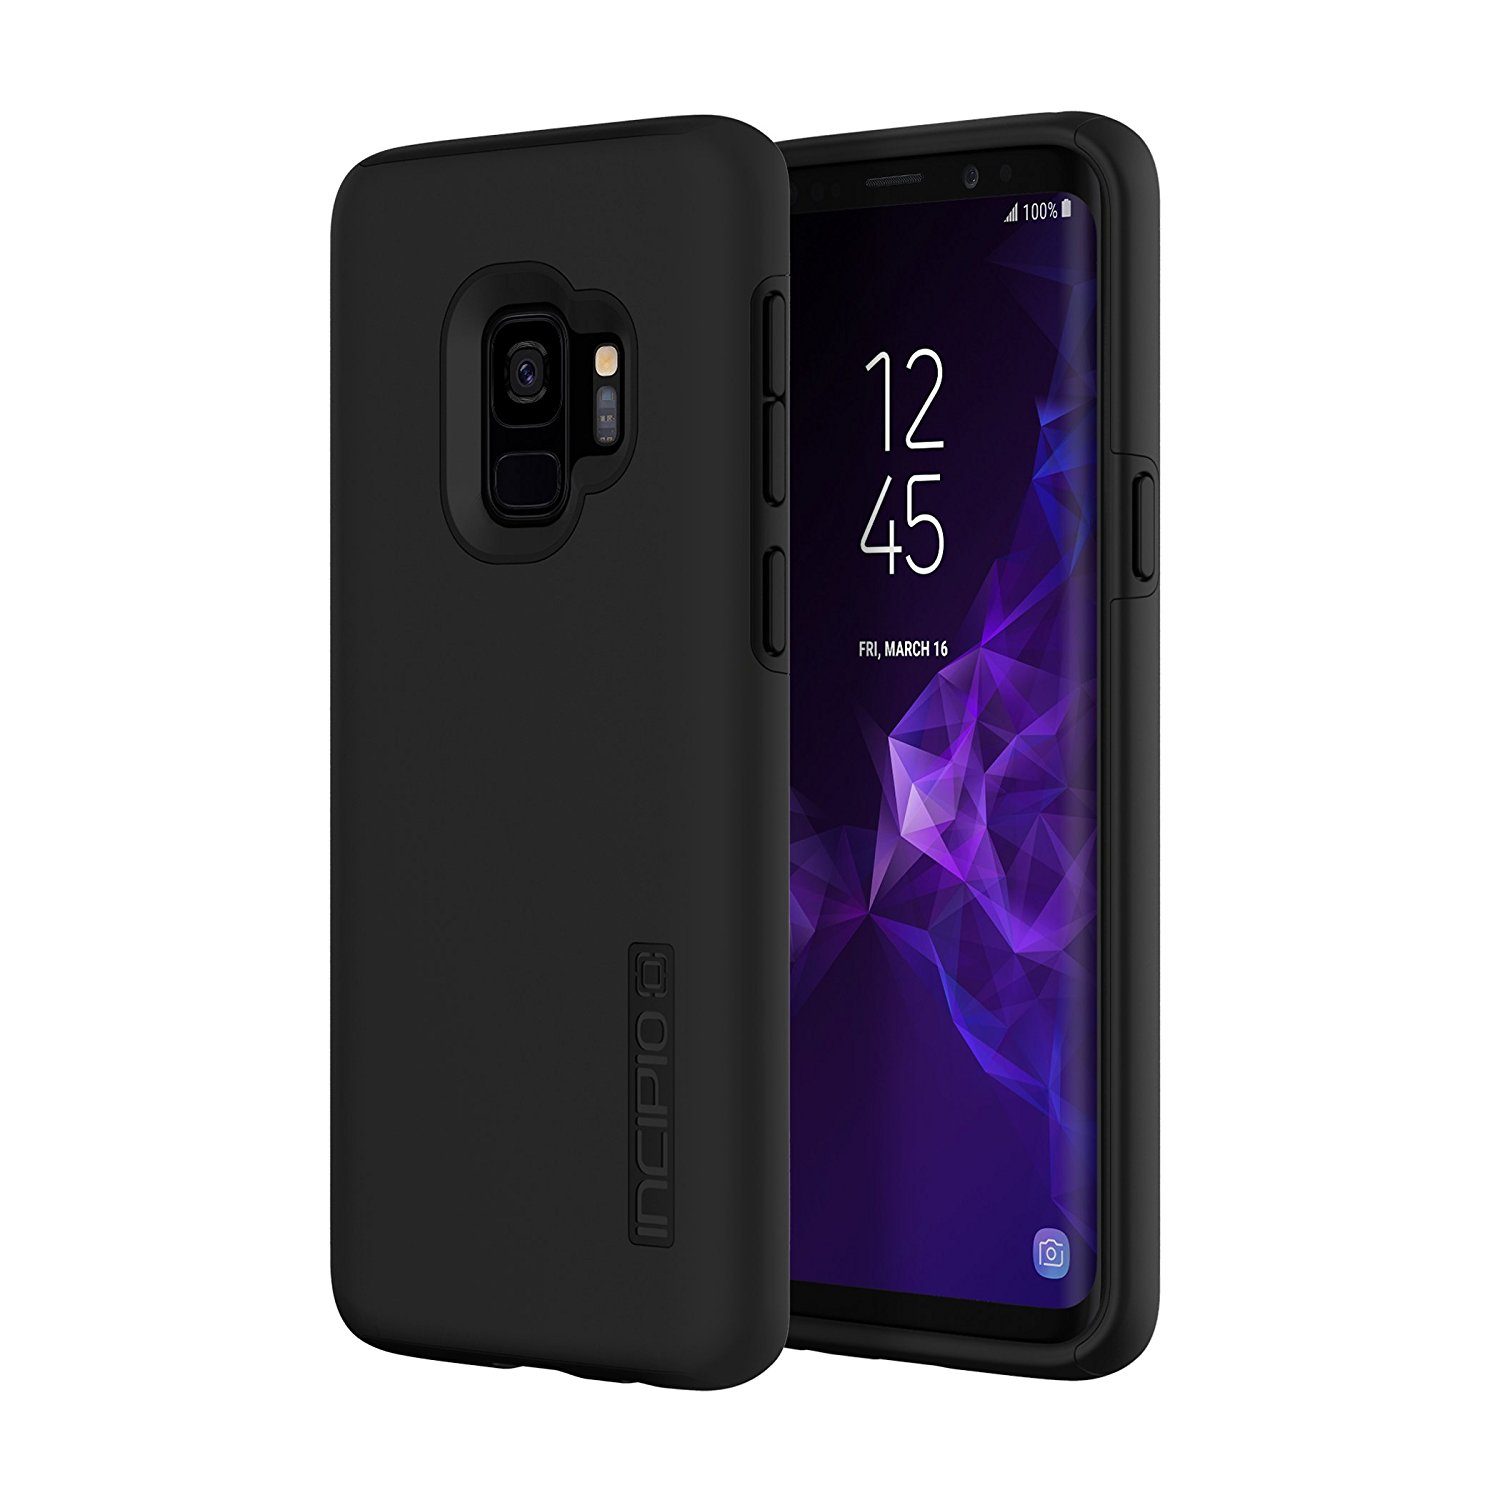 finest selection 42b0b 7e43b Details about Incipio SA-921-BLK DualPro Samsung Galaxy S9 Case, Black